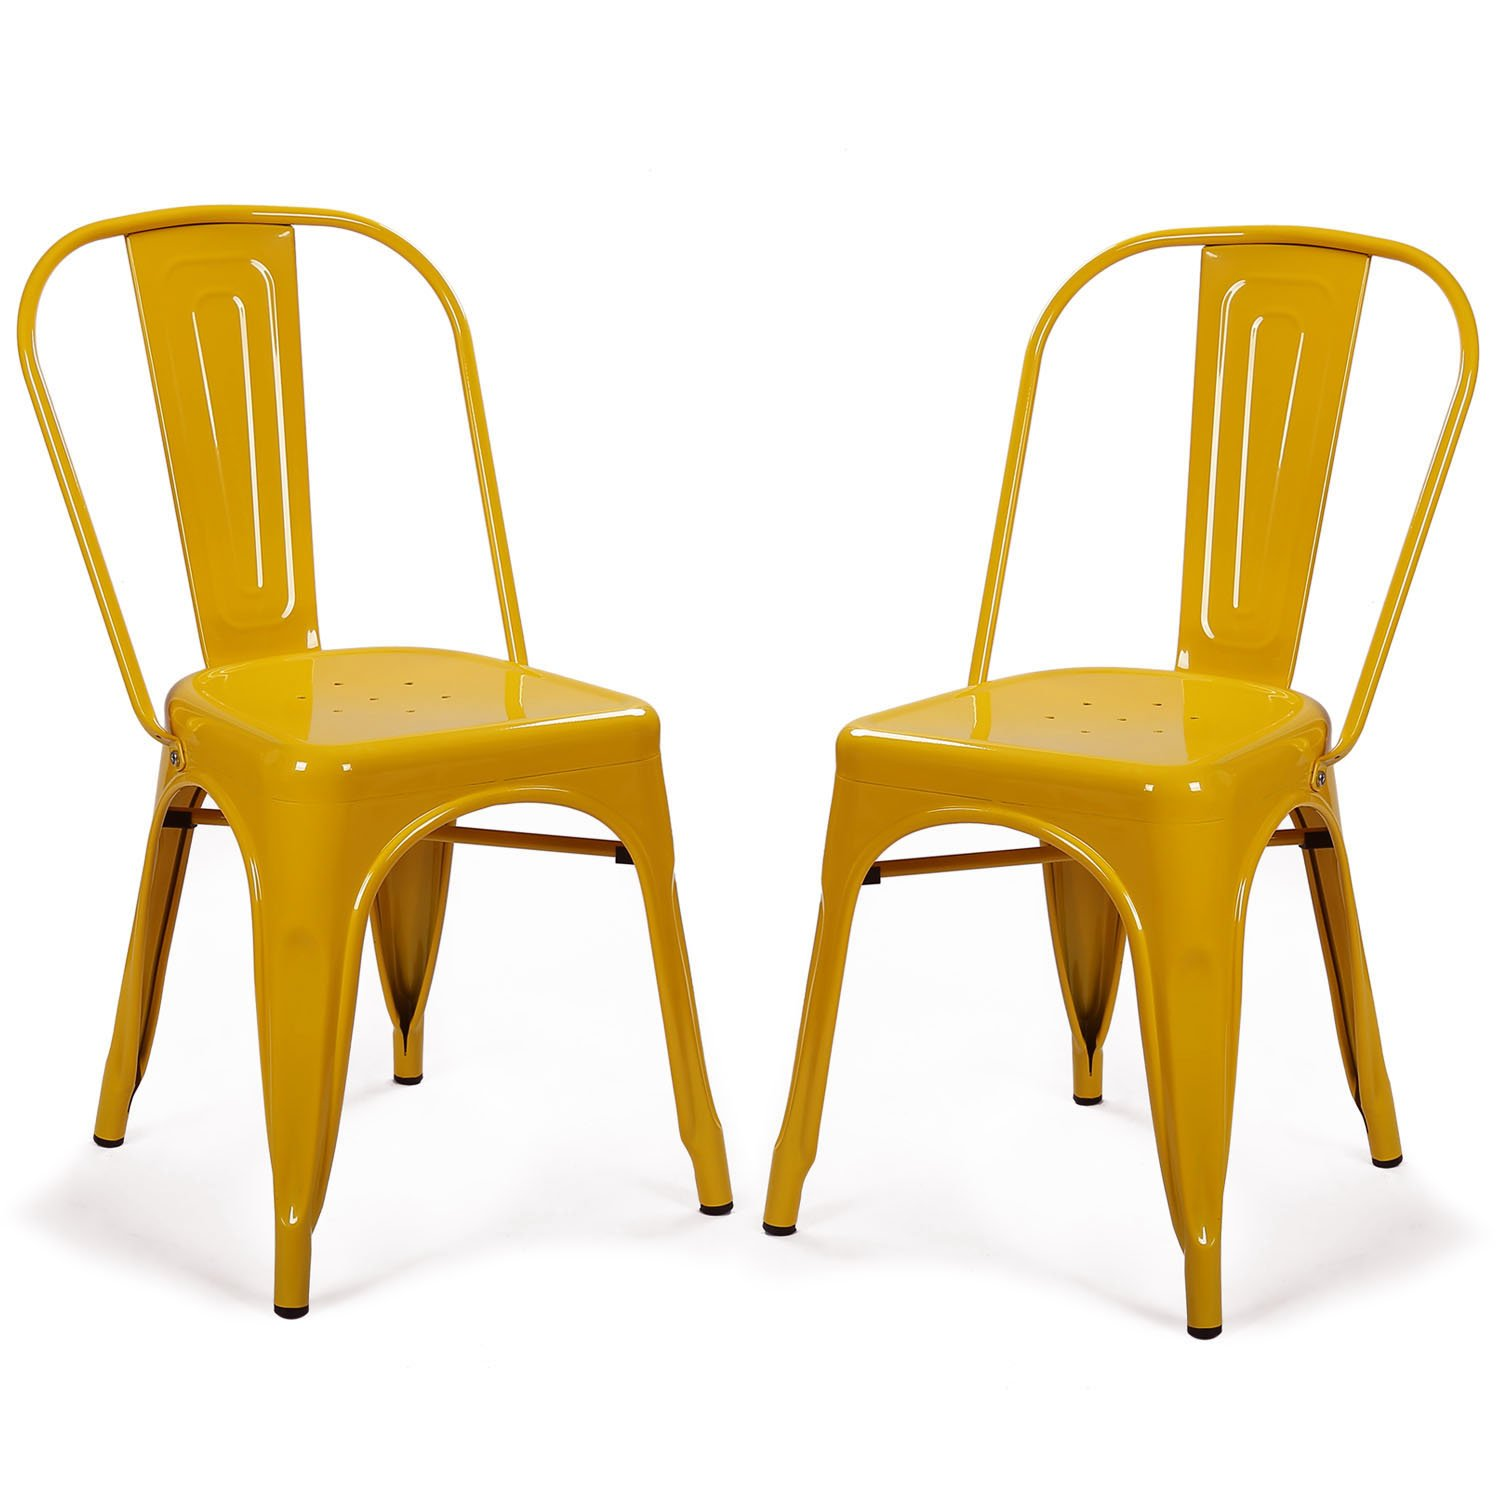 Adeco Metal Stackable Industrial Chic Dining Bistro Cafe Side Chairs, Yellow (Set of 2)